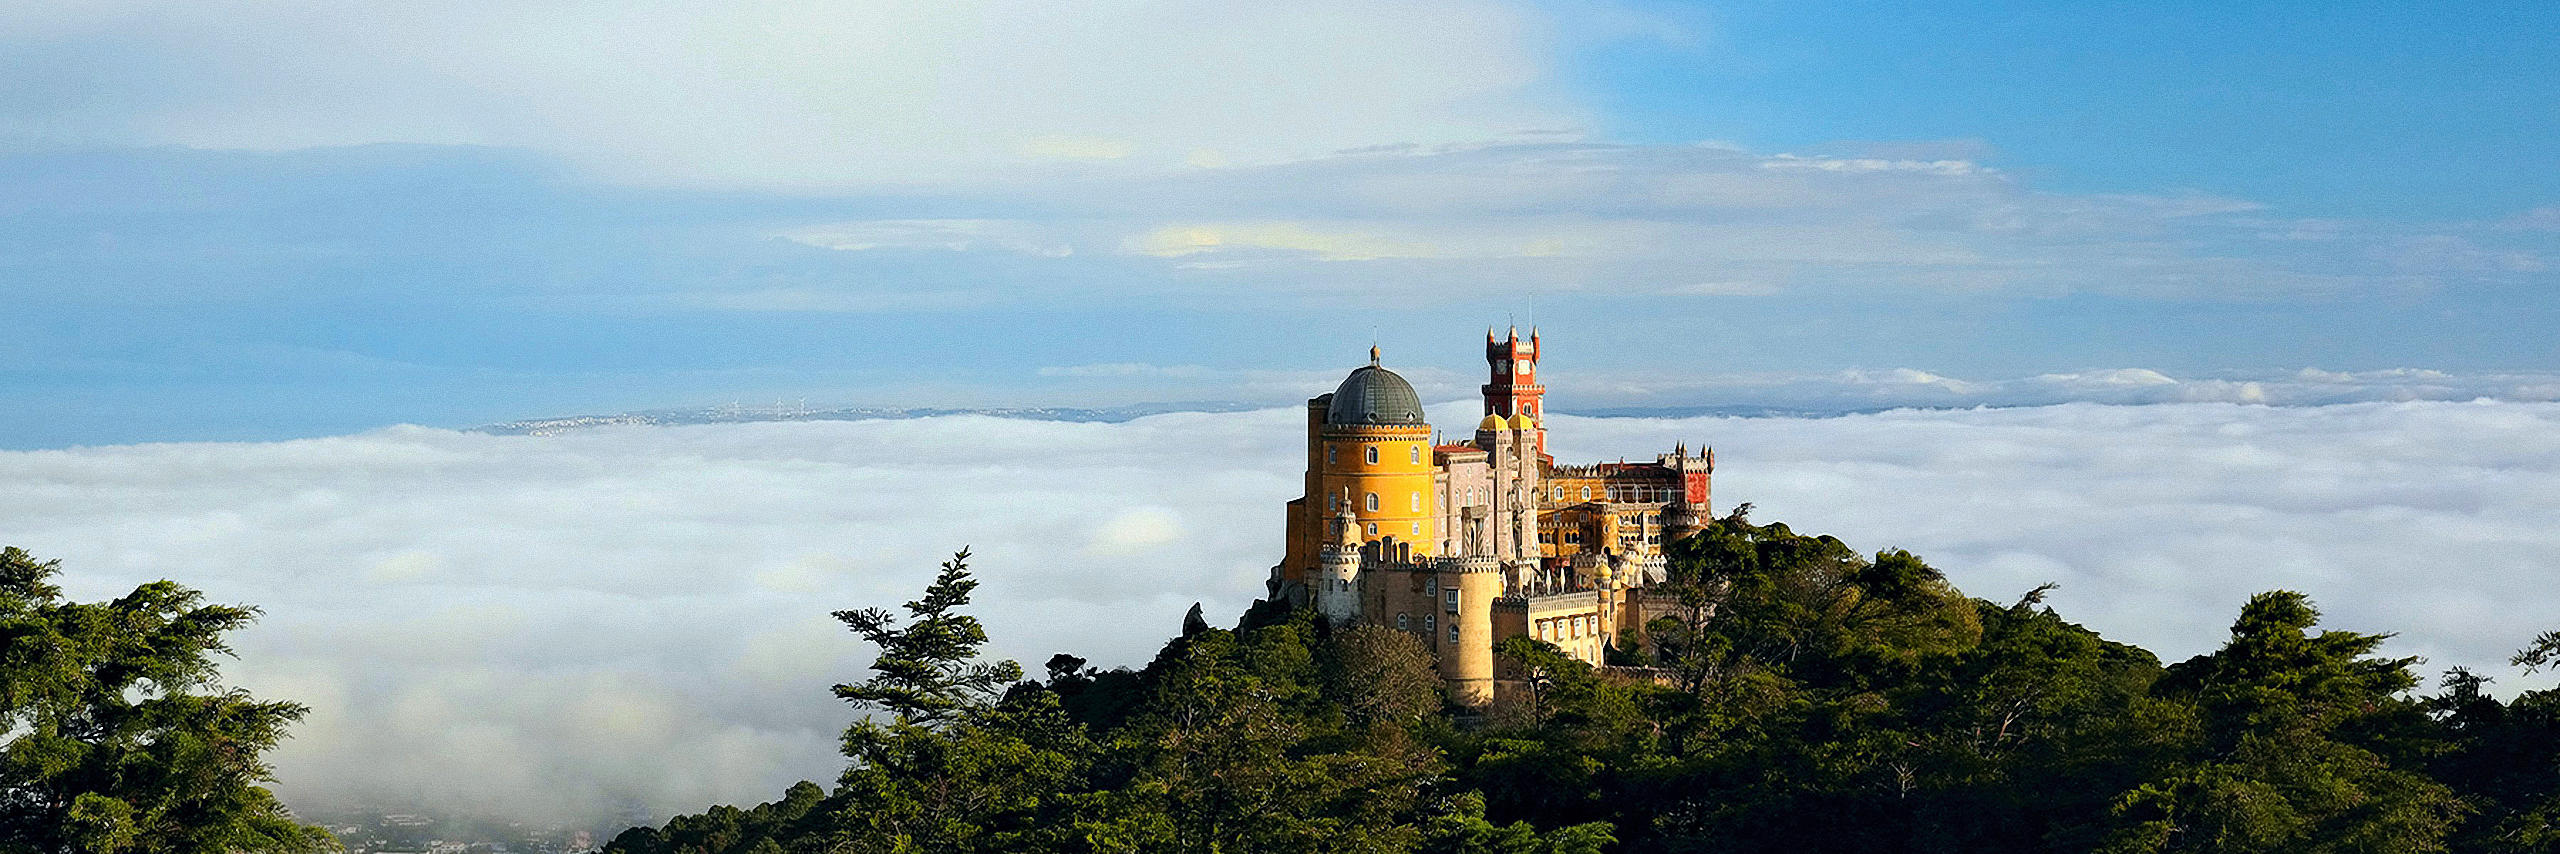 Birdview of Pena Palace emerging from the clouds